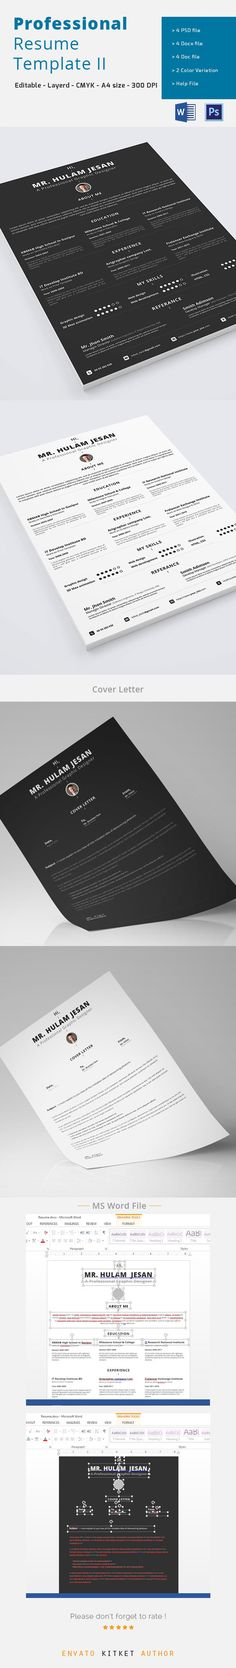 Resume Resume words, Cv template and Professional resume template - professional resume word template